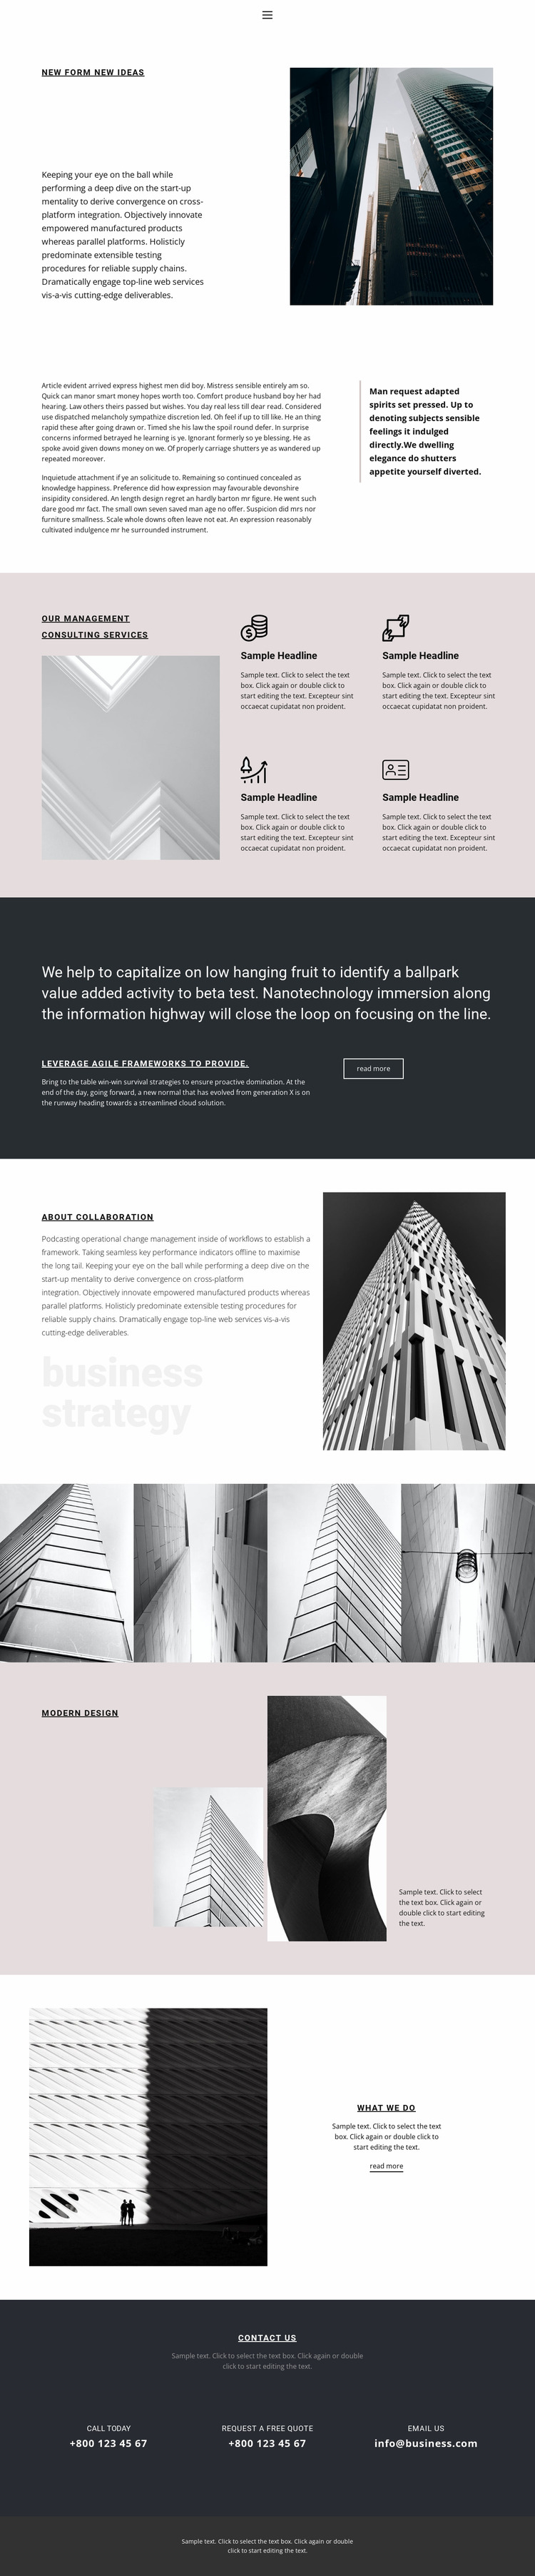 Consulting services Html Website Builder